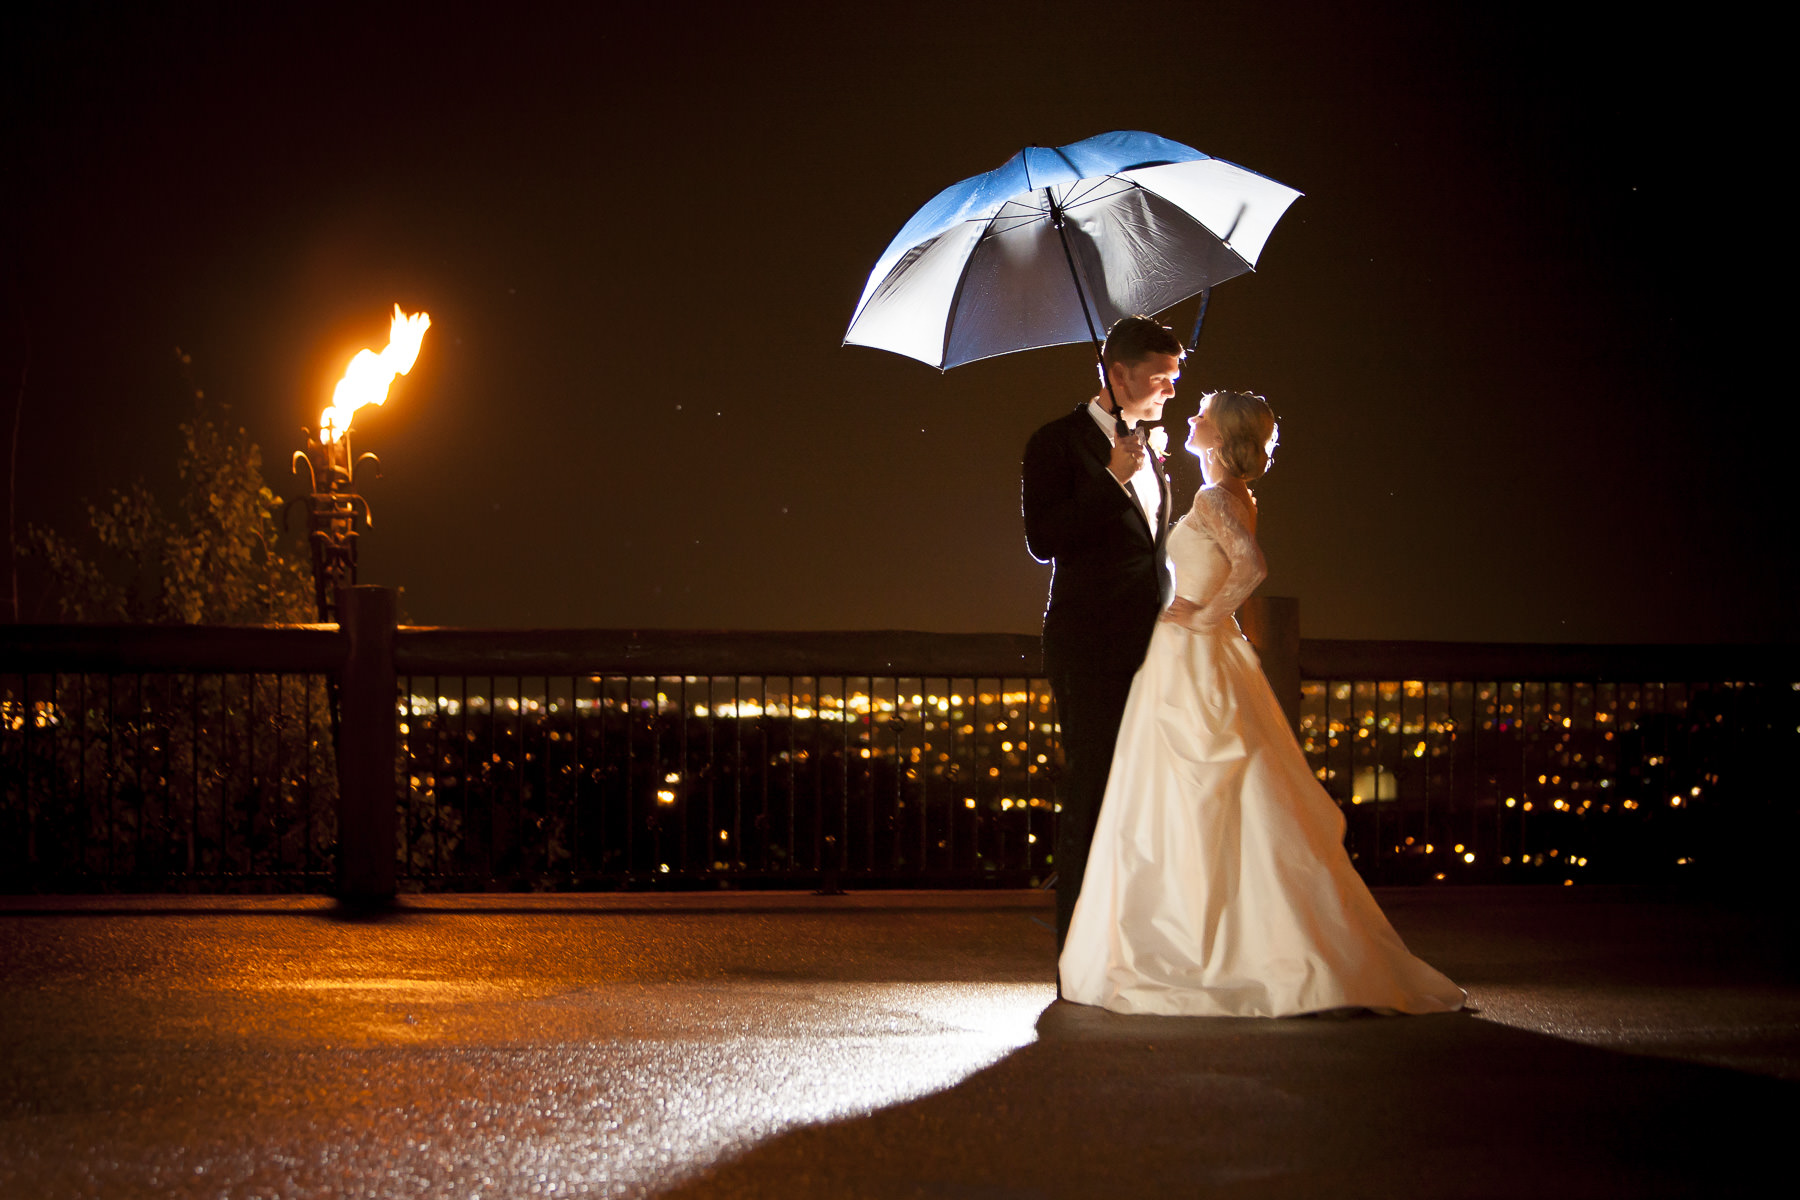 Chapel of Our Saviour Wedding Photographer: Night shot of bride and groom with umbrella, torch and city lights Cheyenne Lodge.